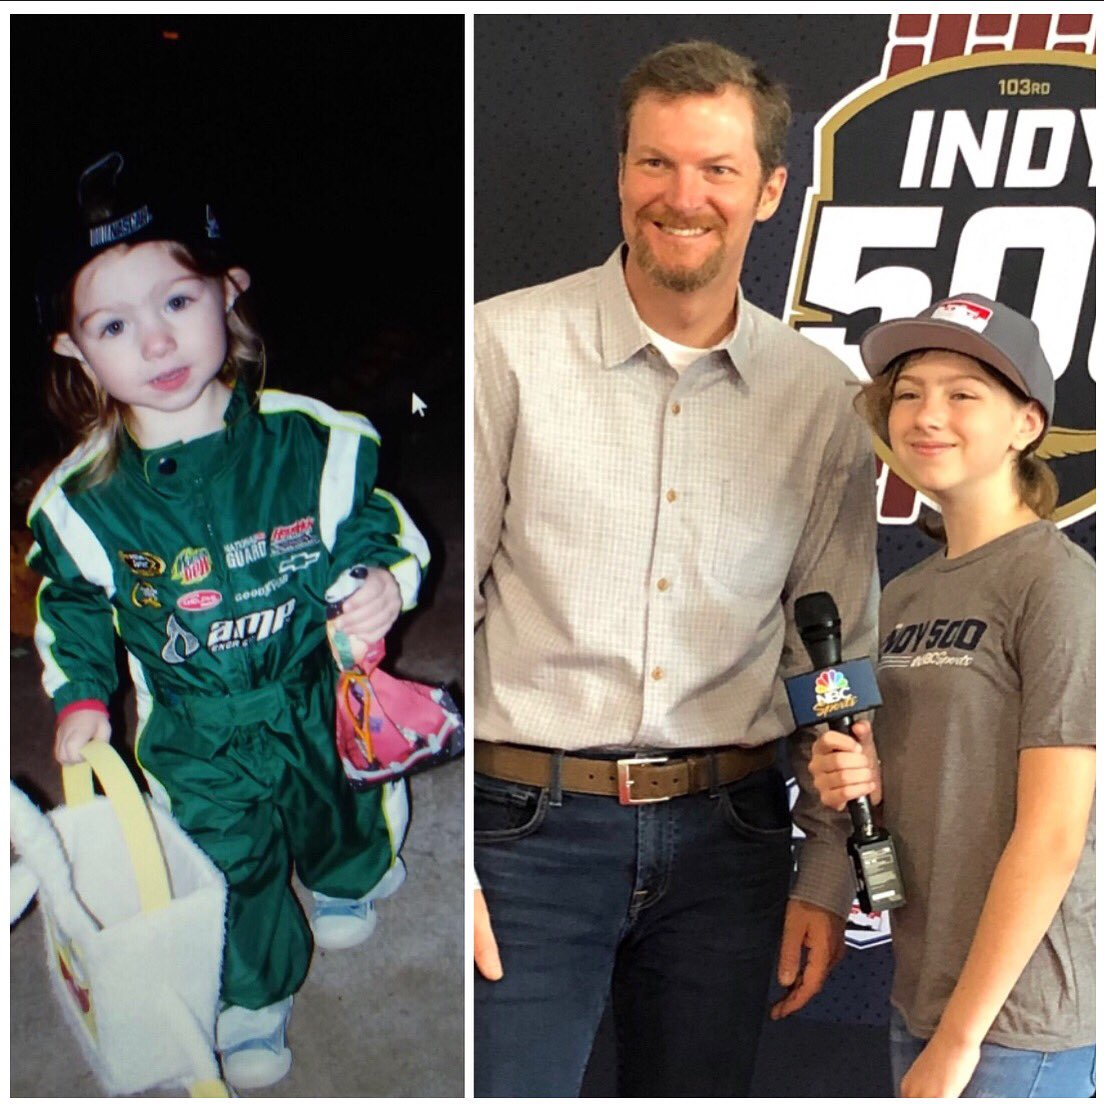 From my 1st Halloween to today, @dalejr fan for life! Thanks for being my first professional interview for @indycaronnbc! See you @DISupdates in July #DaleJr!